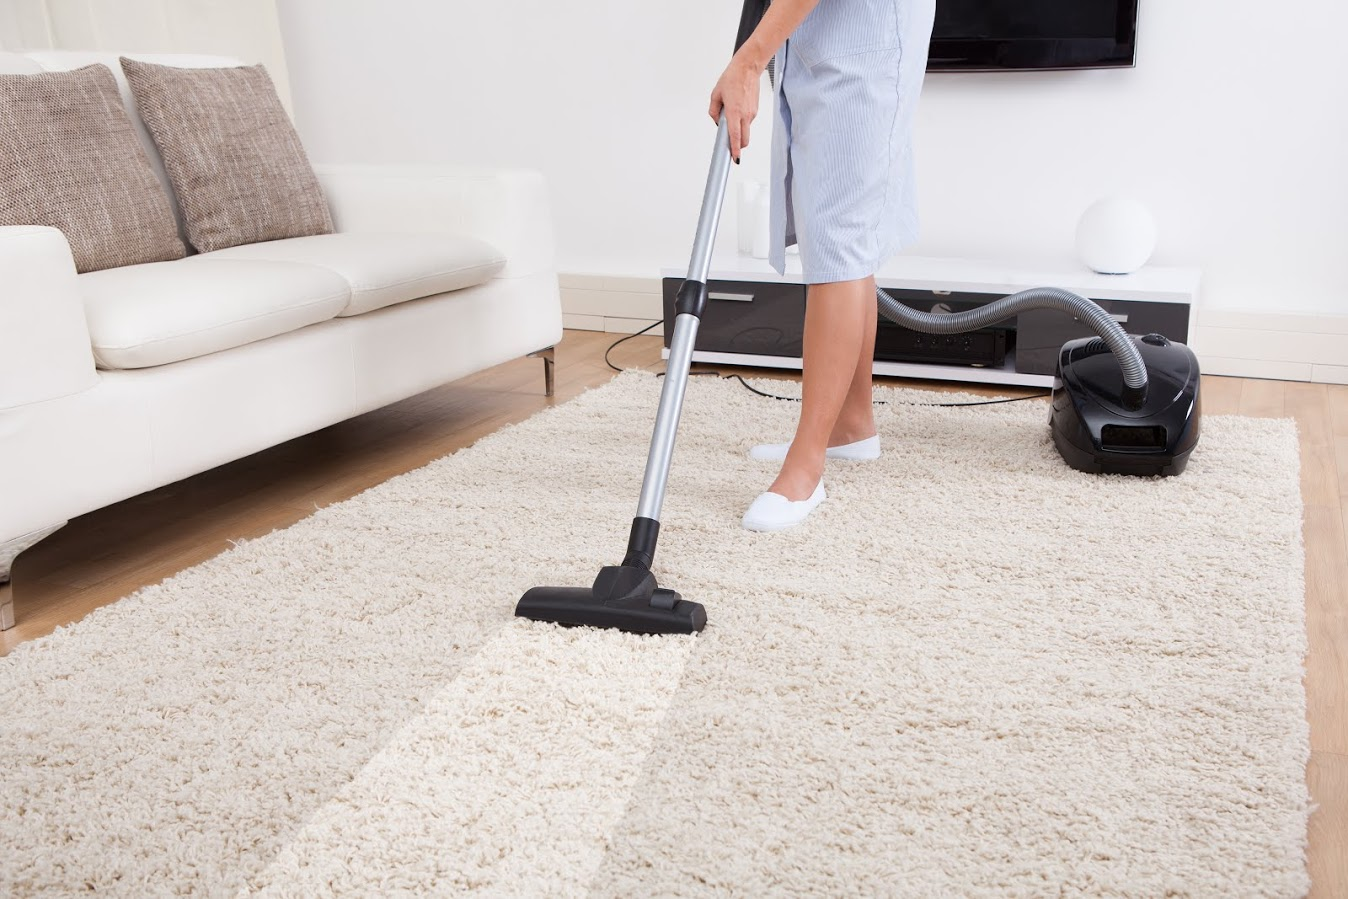 Goldstar Cleaning Services image 3